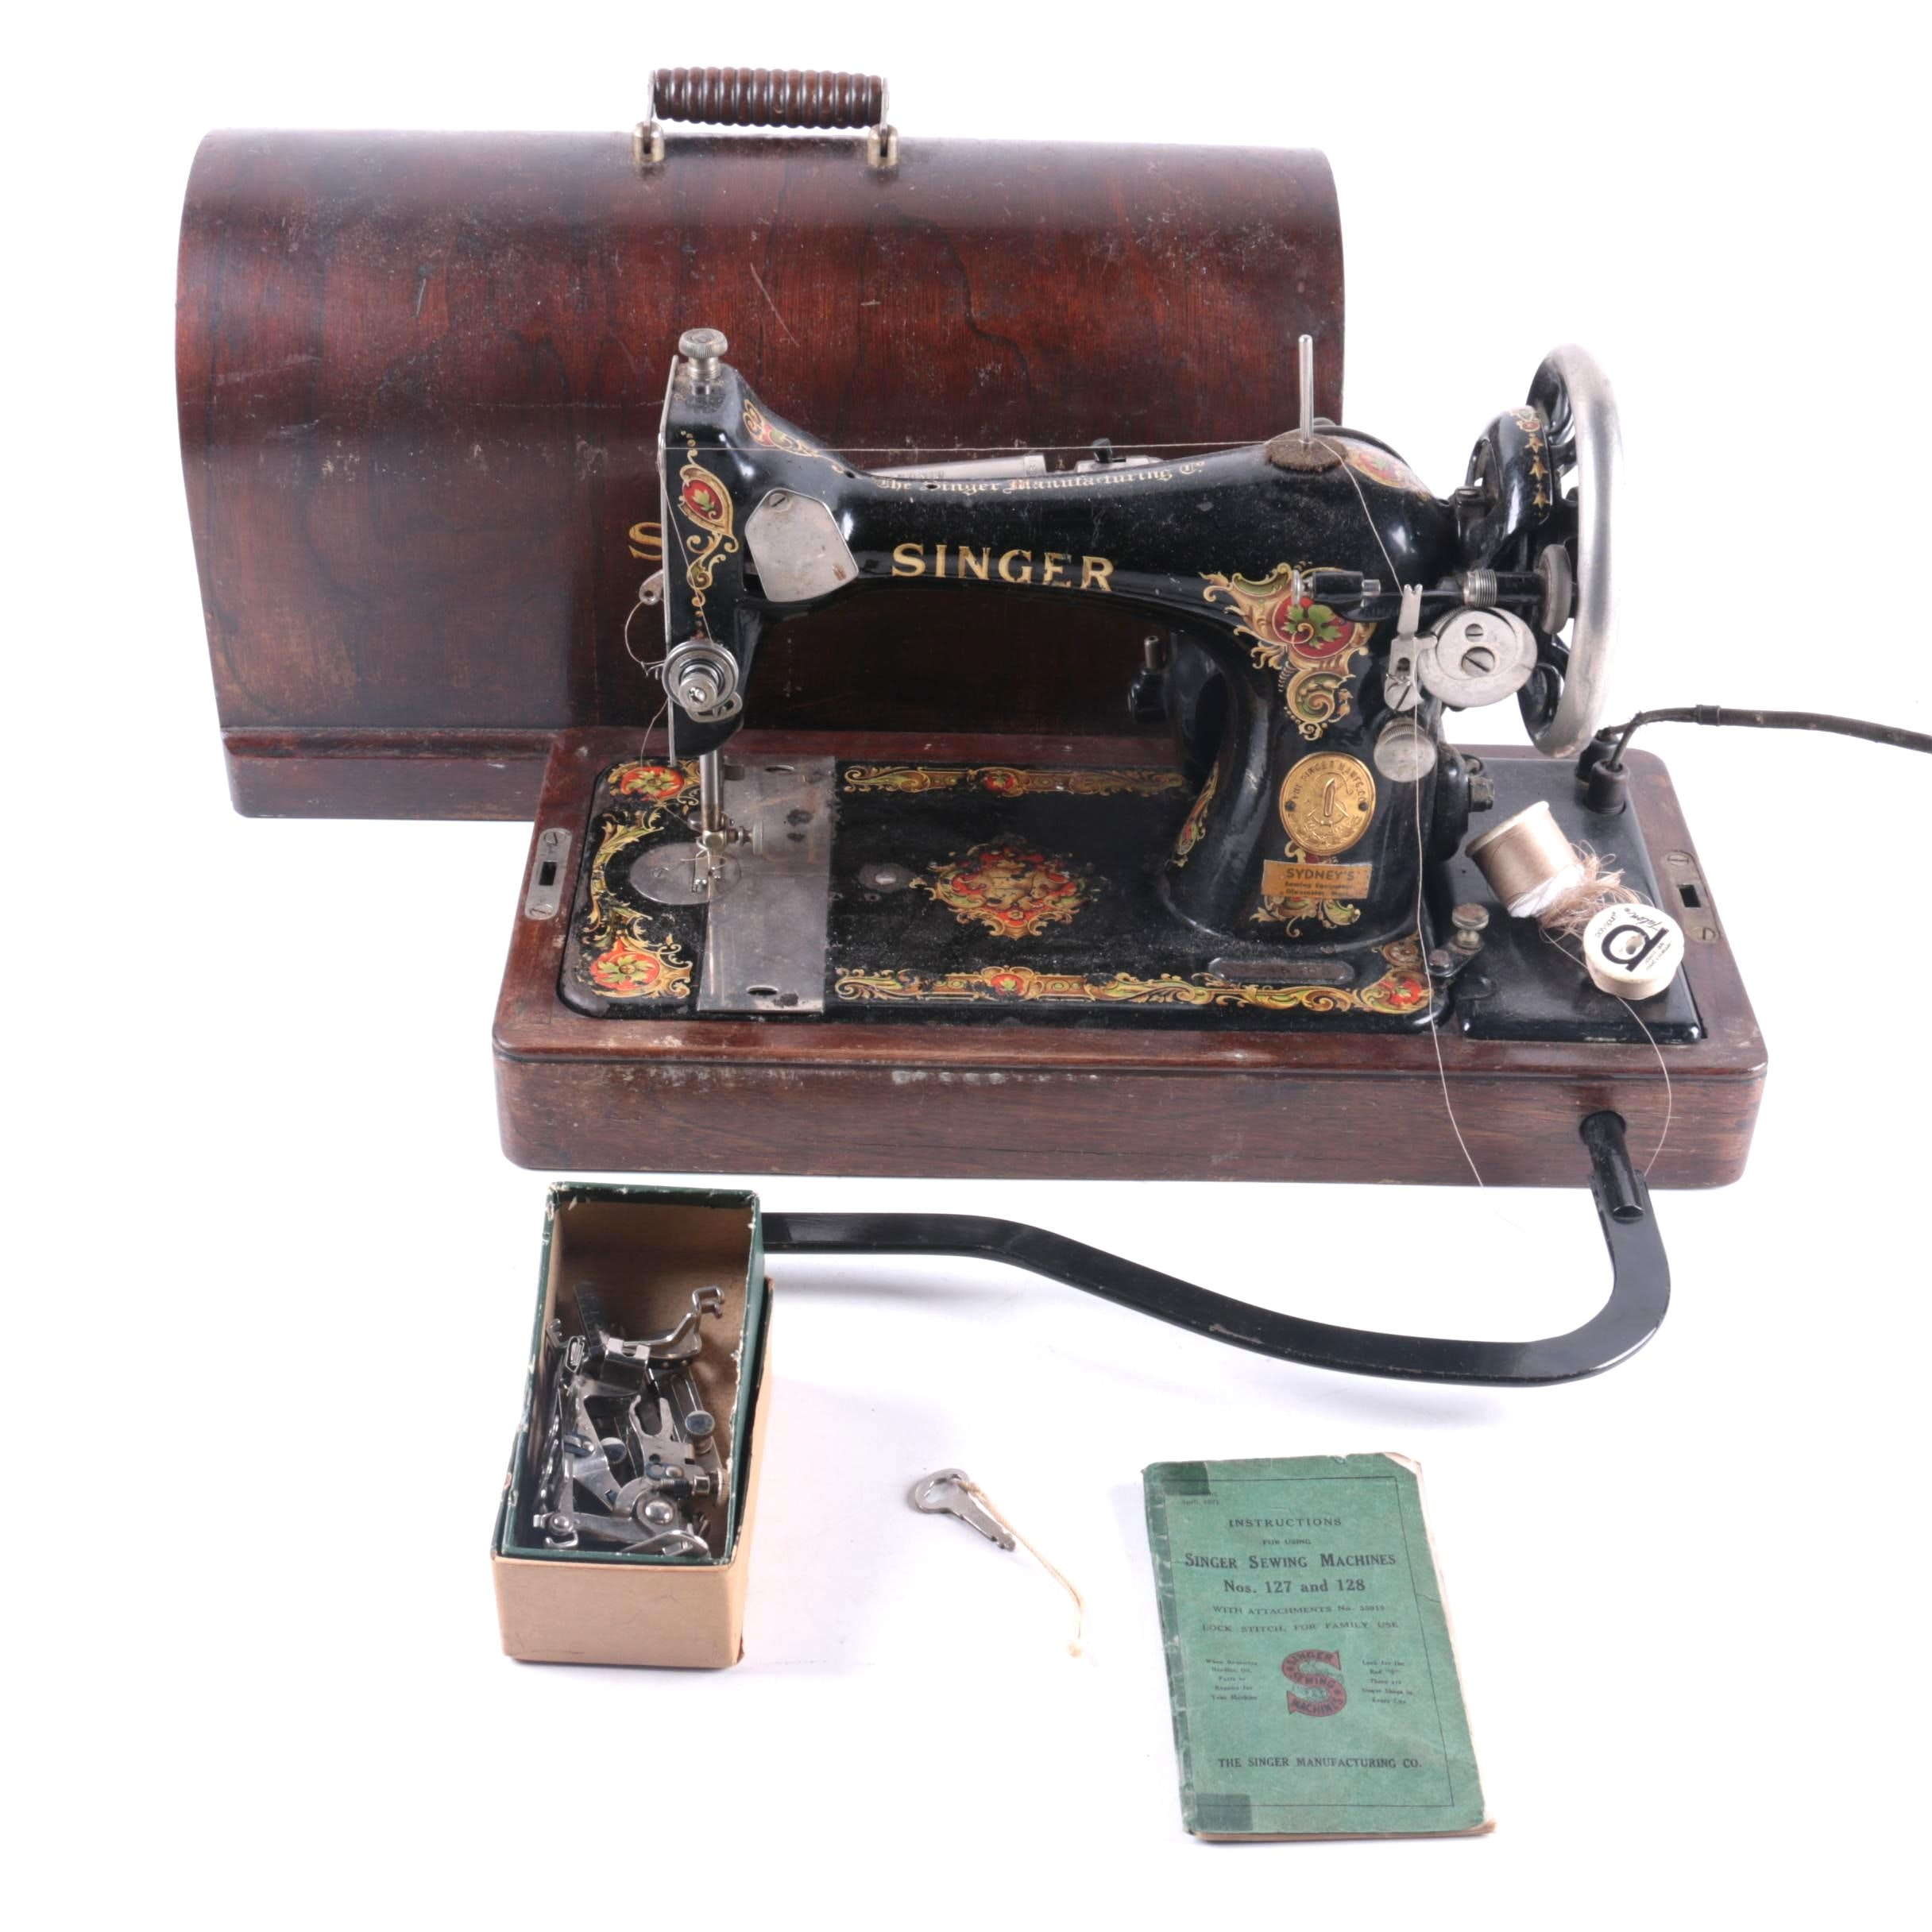 1925 singer sewing machine manual and accessories ebth rh ebth com singer sewing machine manuals 8220 singer sewing machine manuals 8220